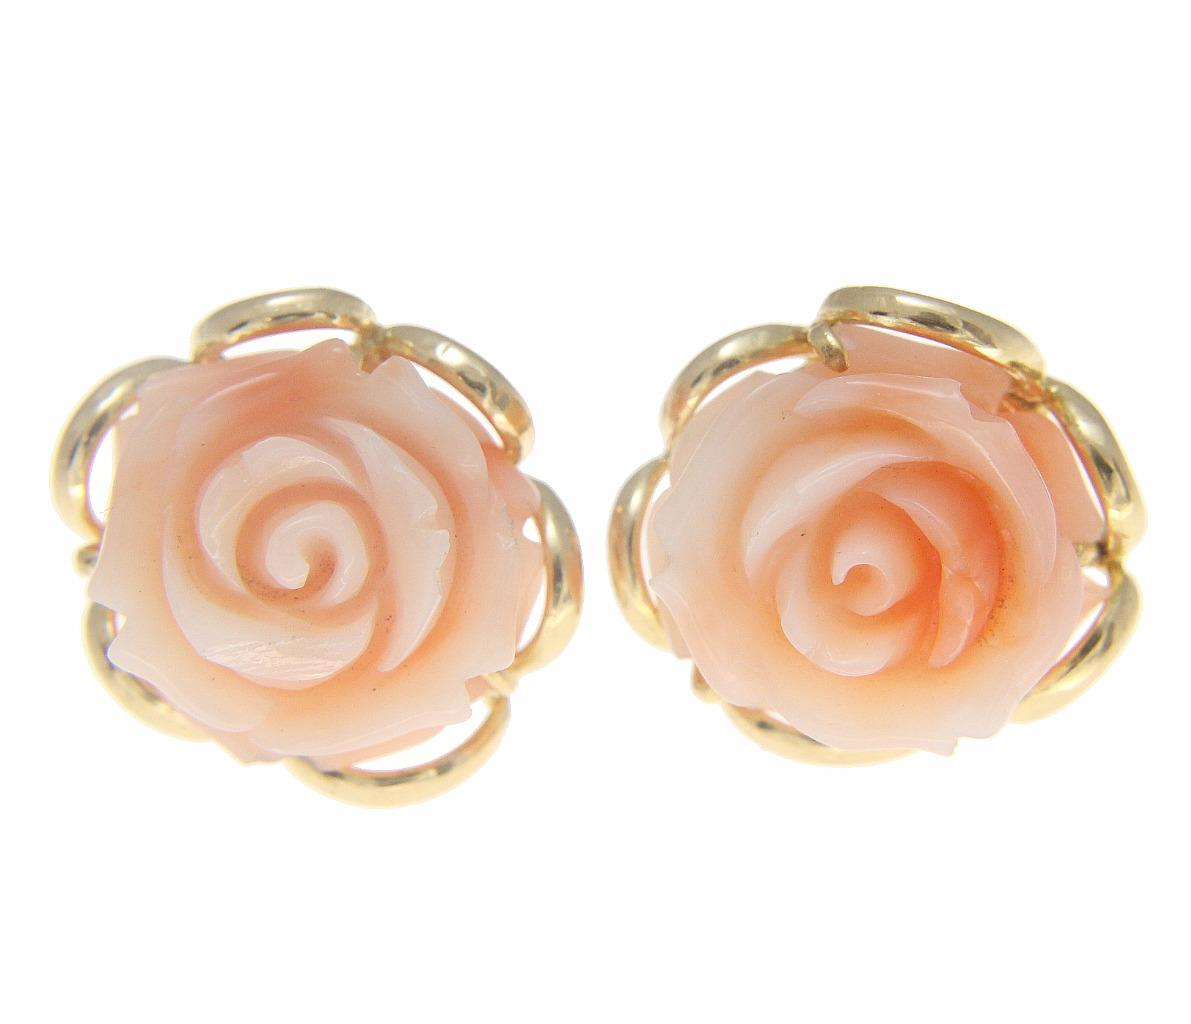 Genuine natural pink coral carved flower stud earrings solid 14k yellow gold by